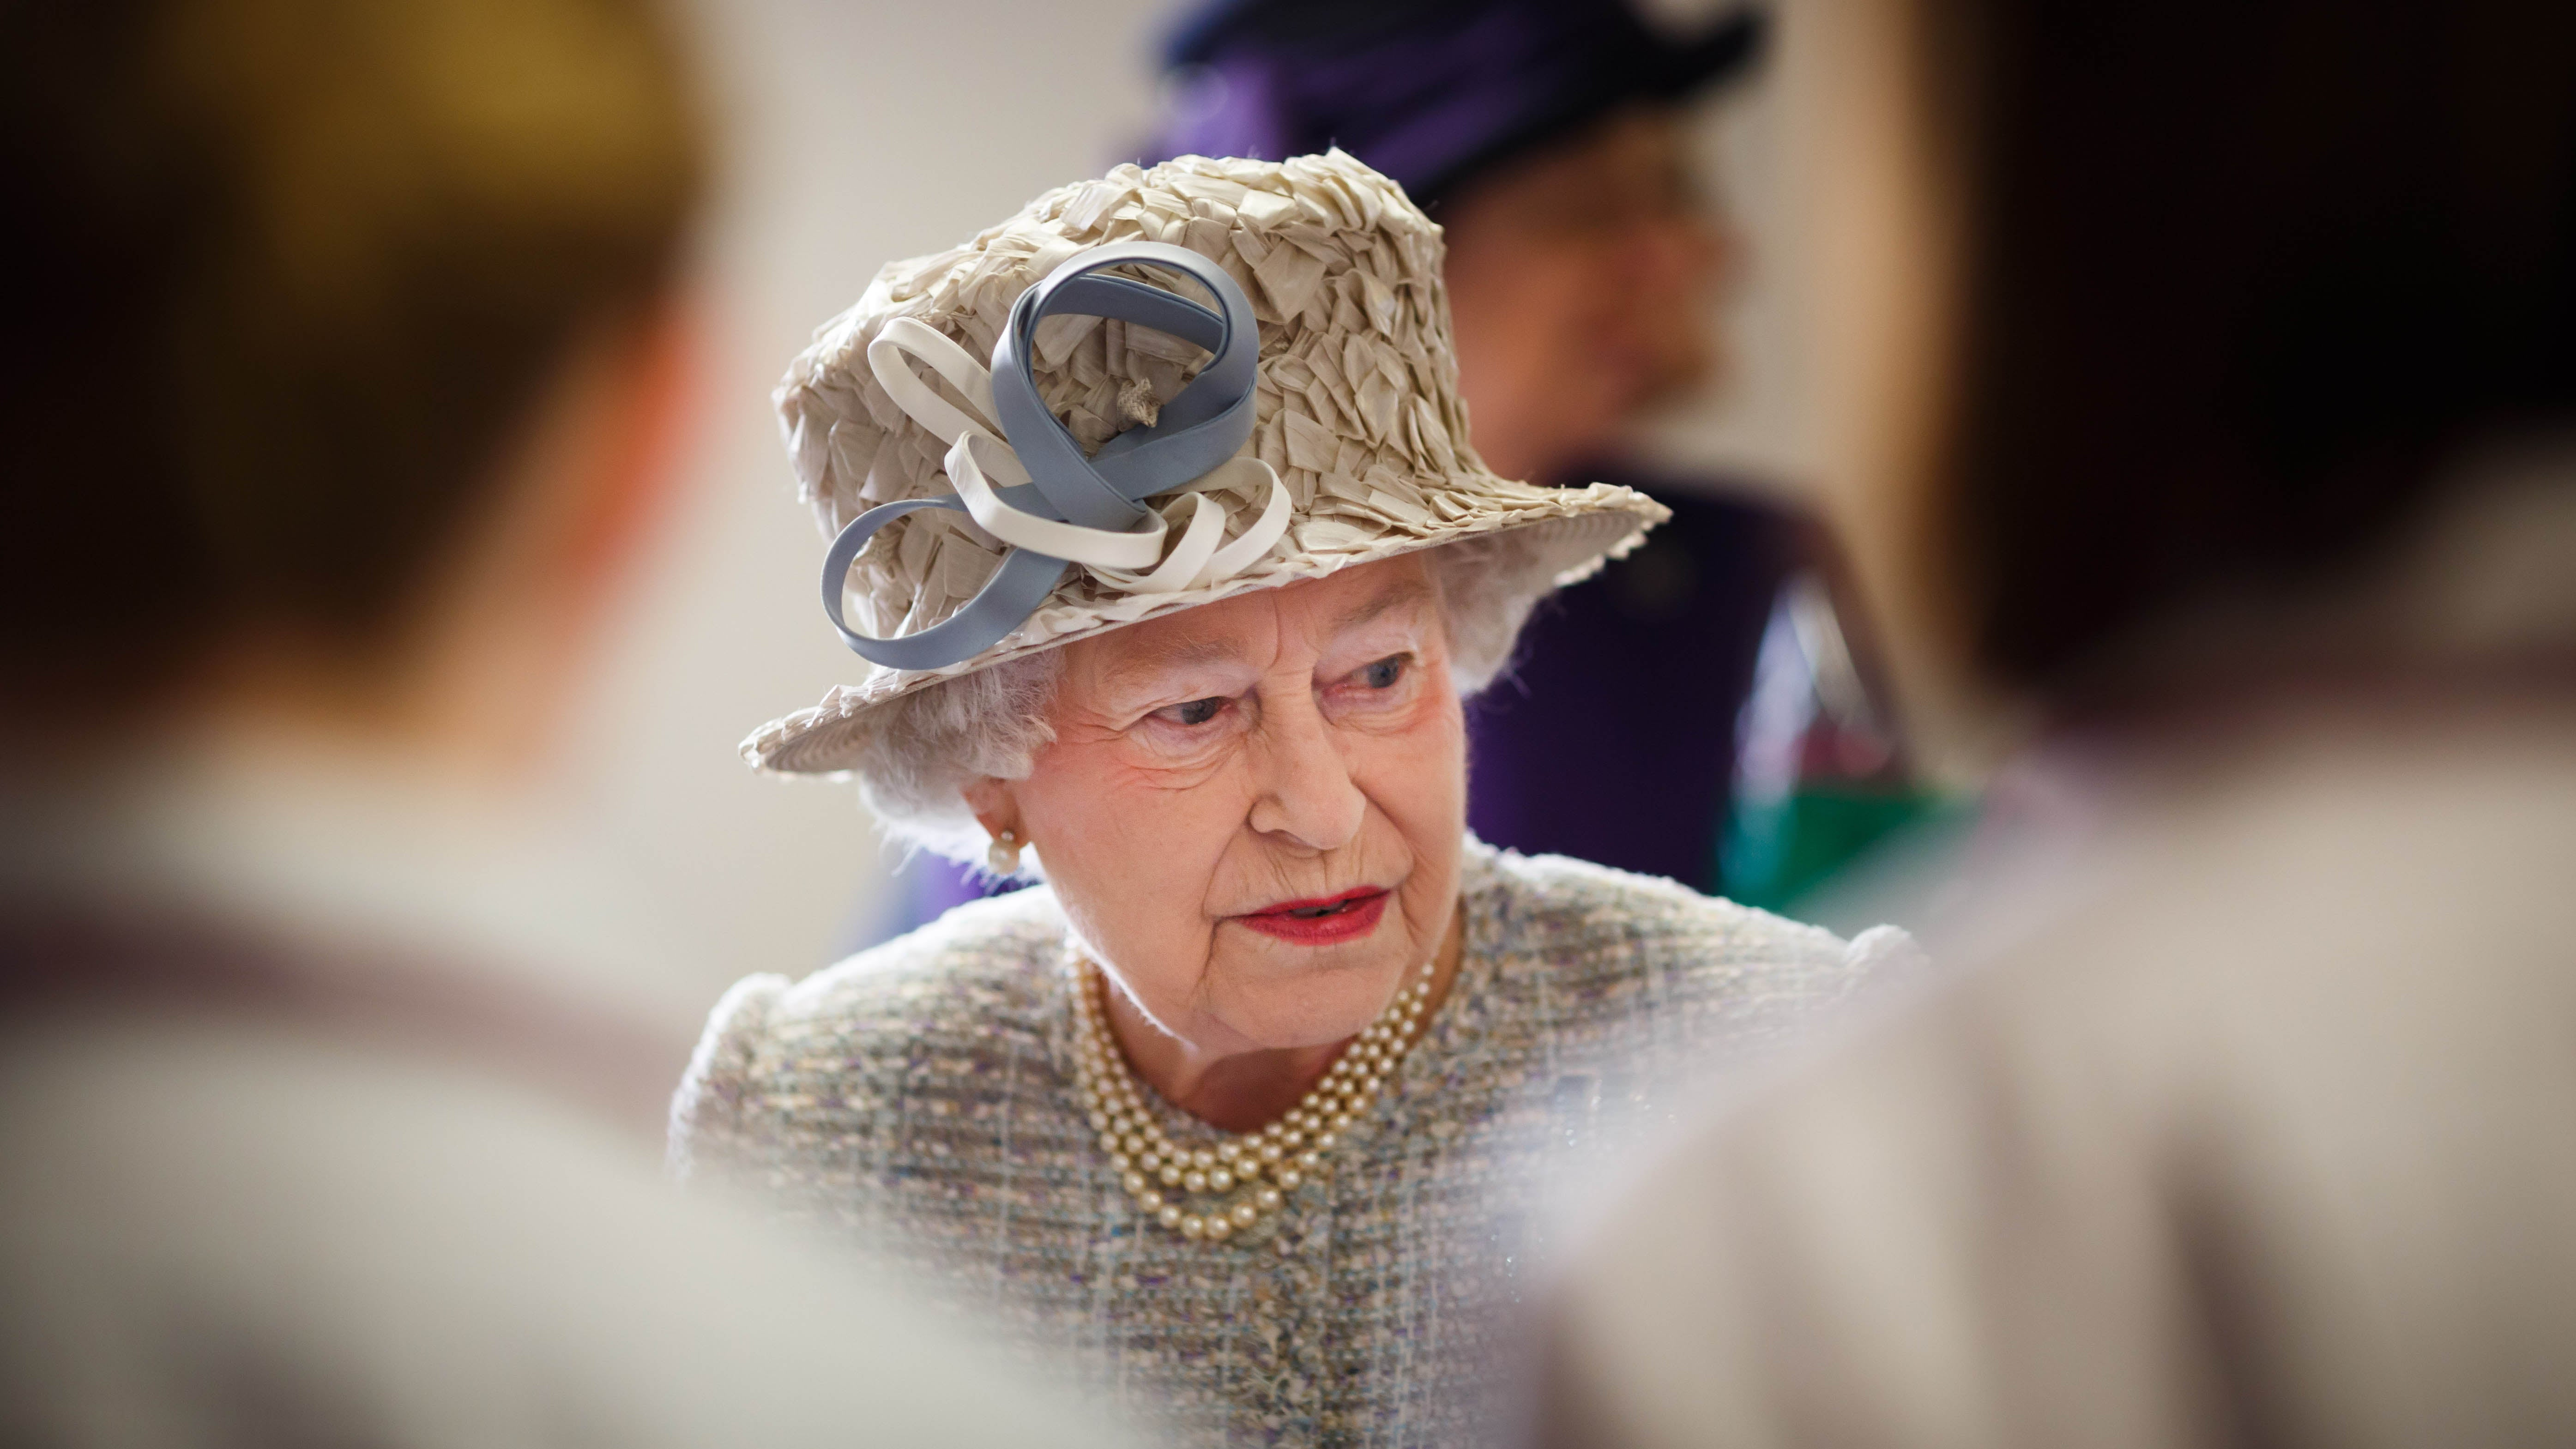 Queen of England Just Happens to Win England's '#1 Queen' Award